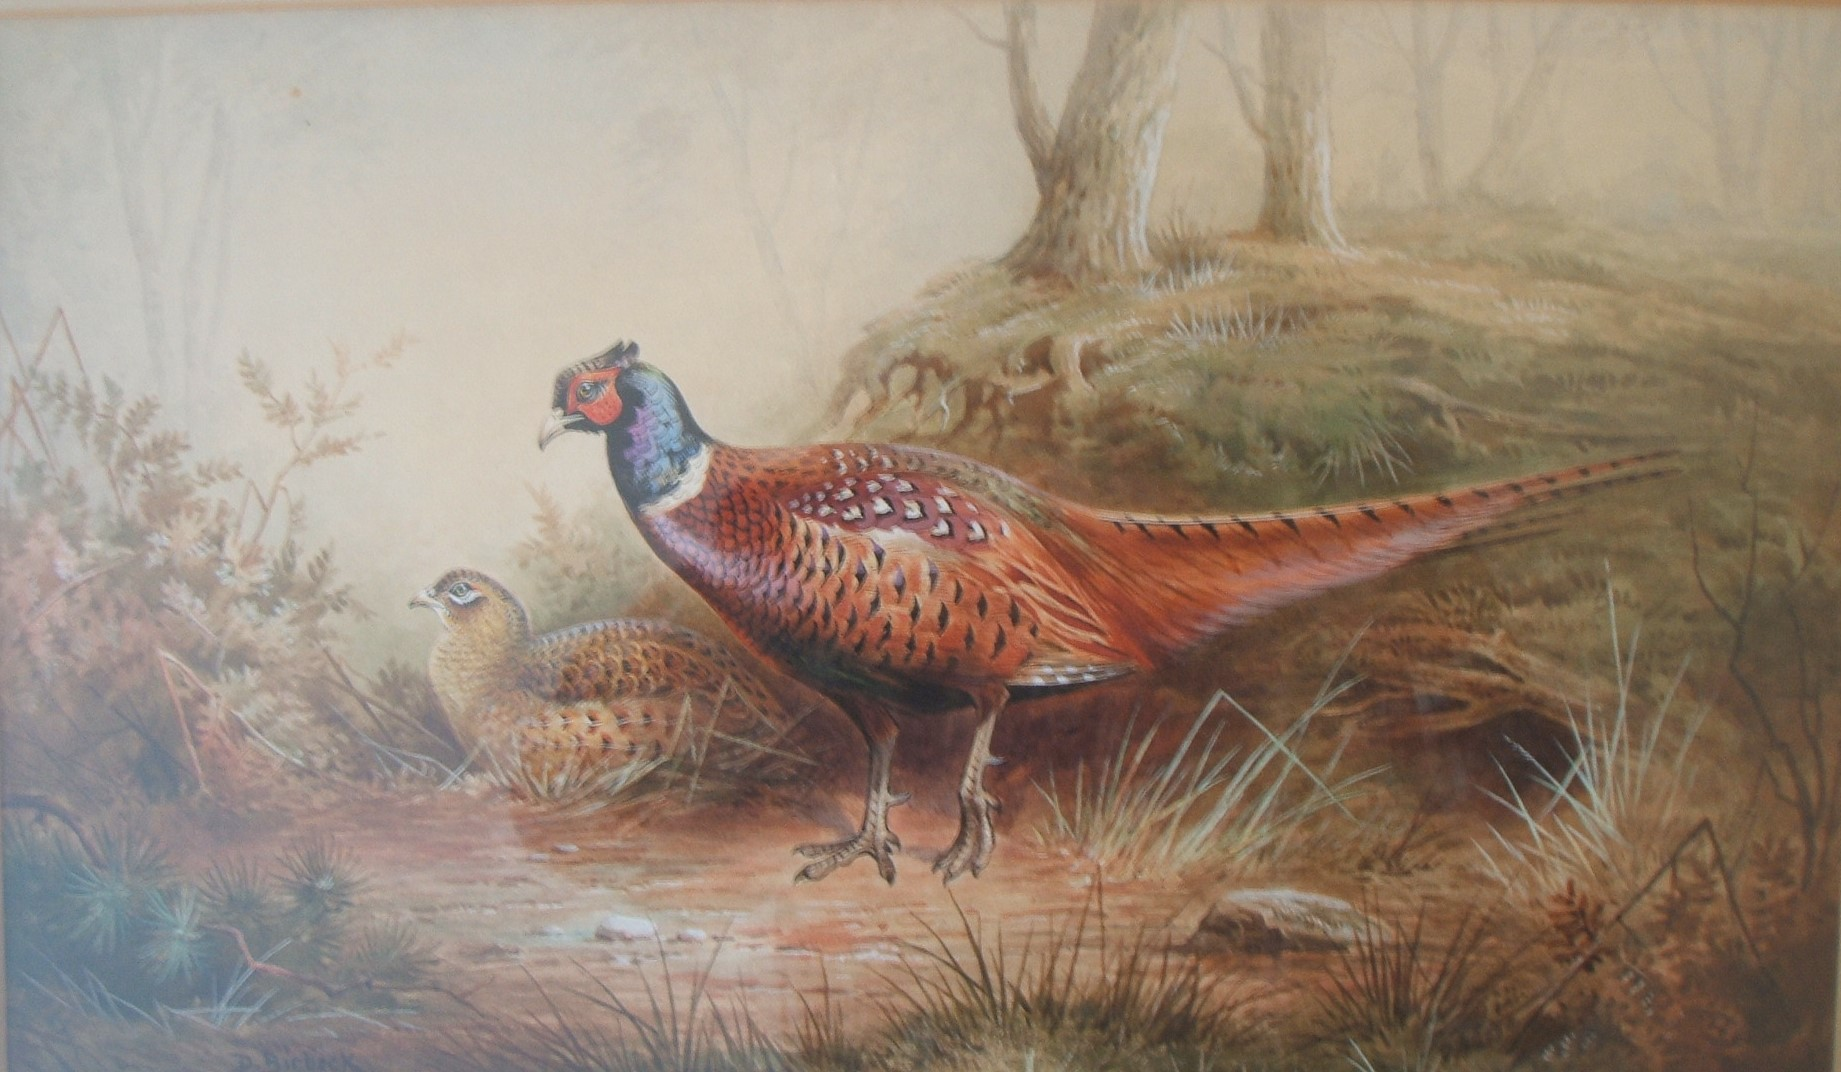 royal-crown-derby-pheasants-by-donald-birbeck